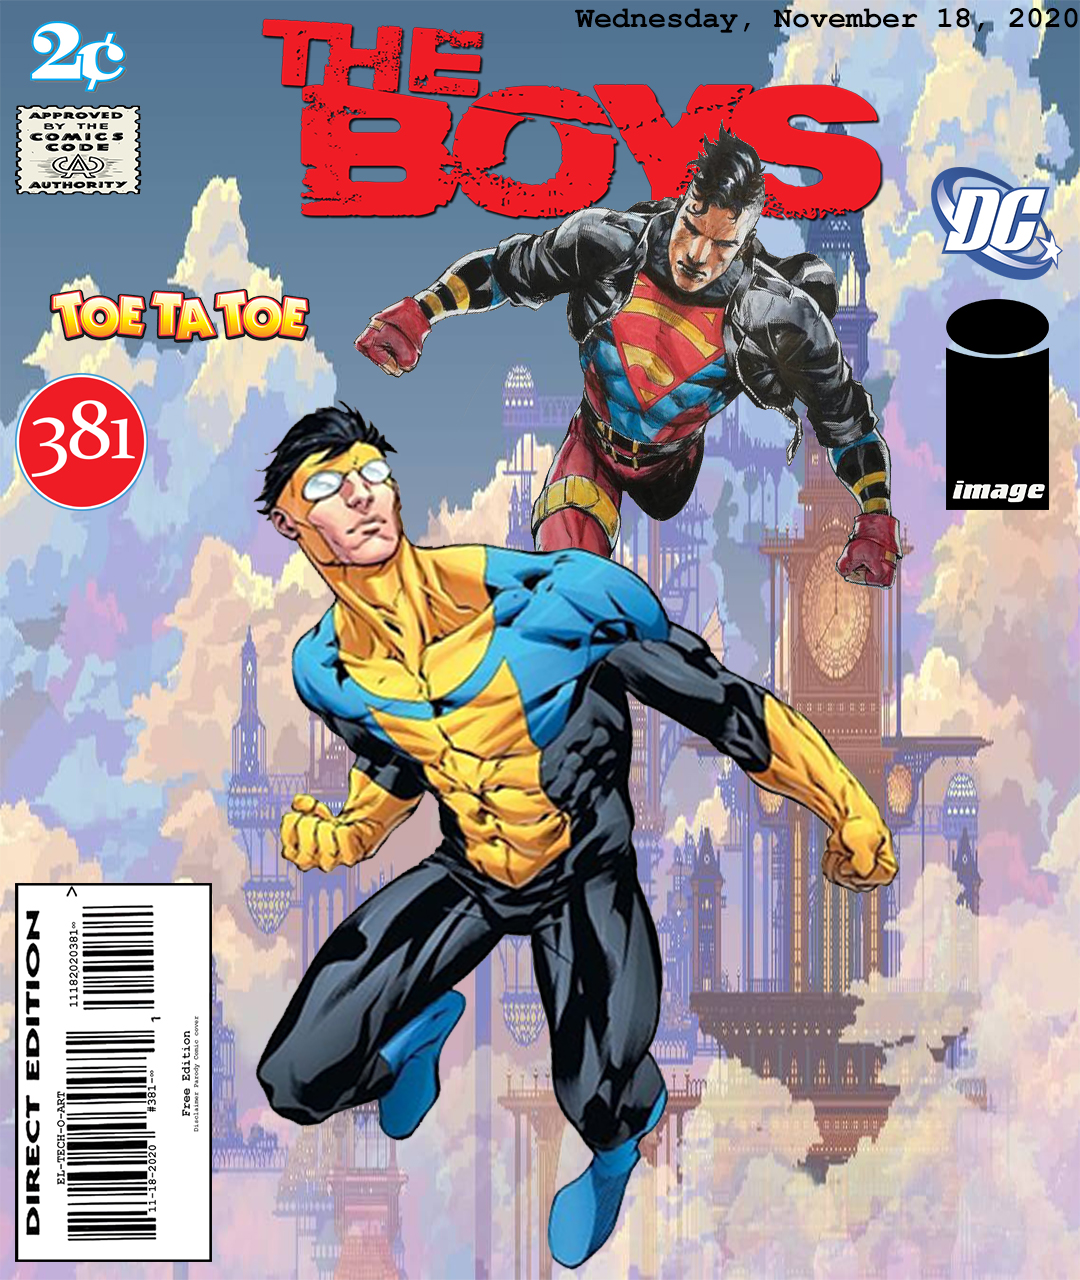 Fan Photoshop Edit Comic Cover Superboy and Invincible